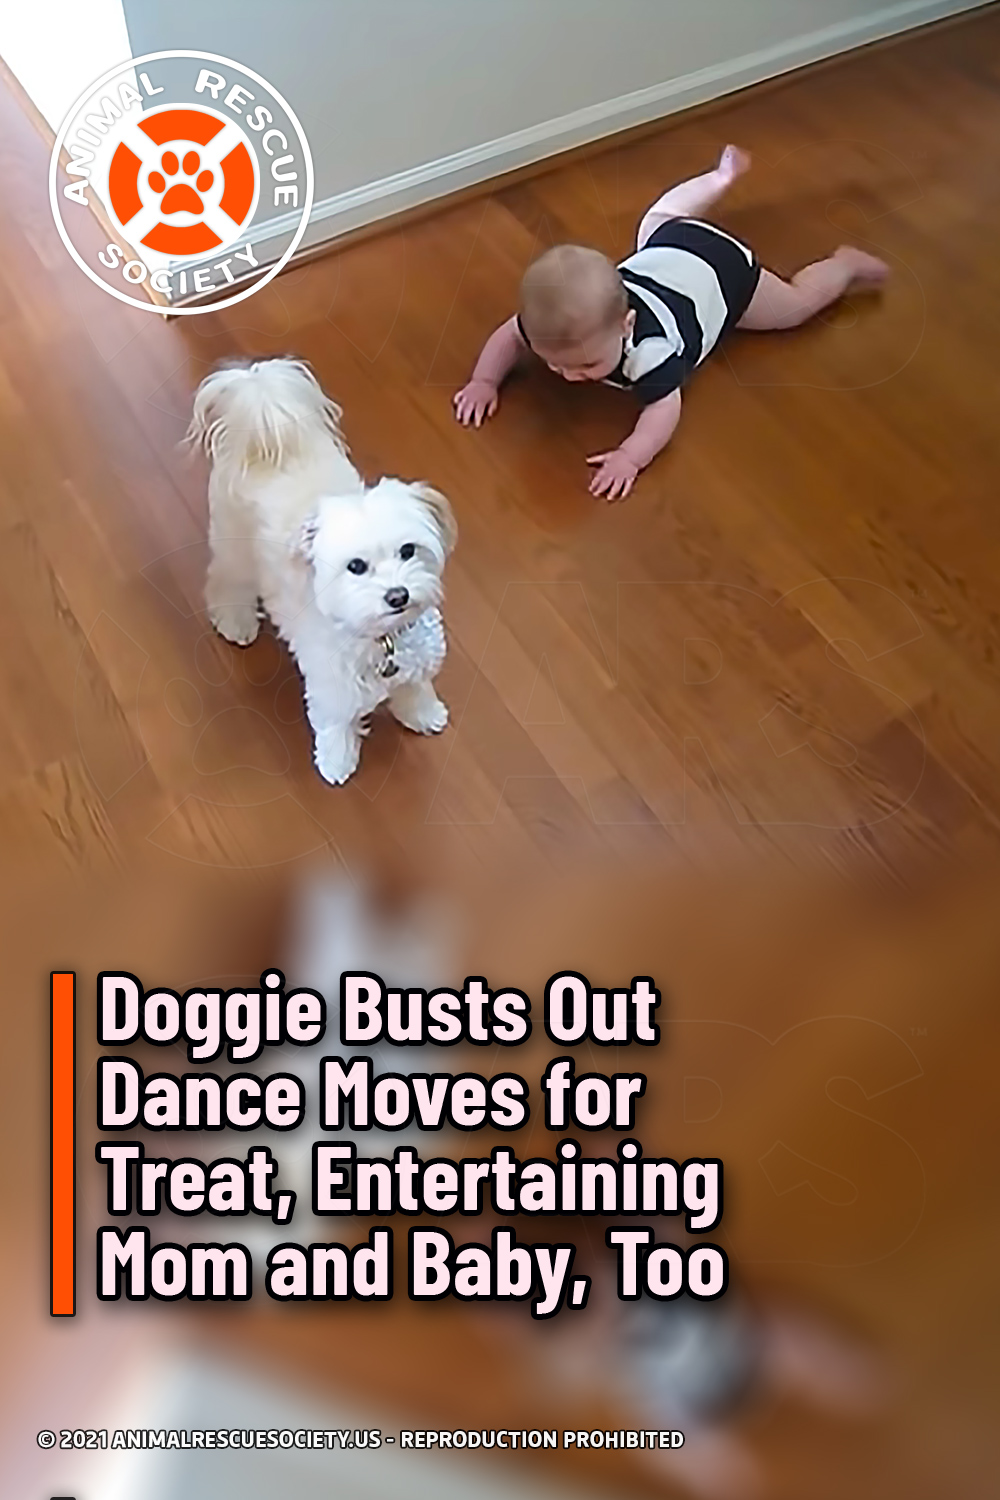 Doggie Busts Out Dance Moves for Treat, Entertaining Mom and Baby, Too